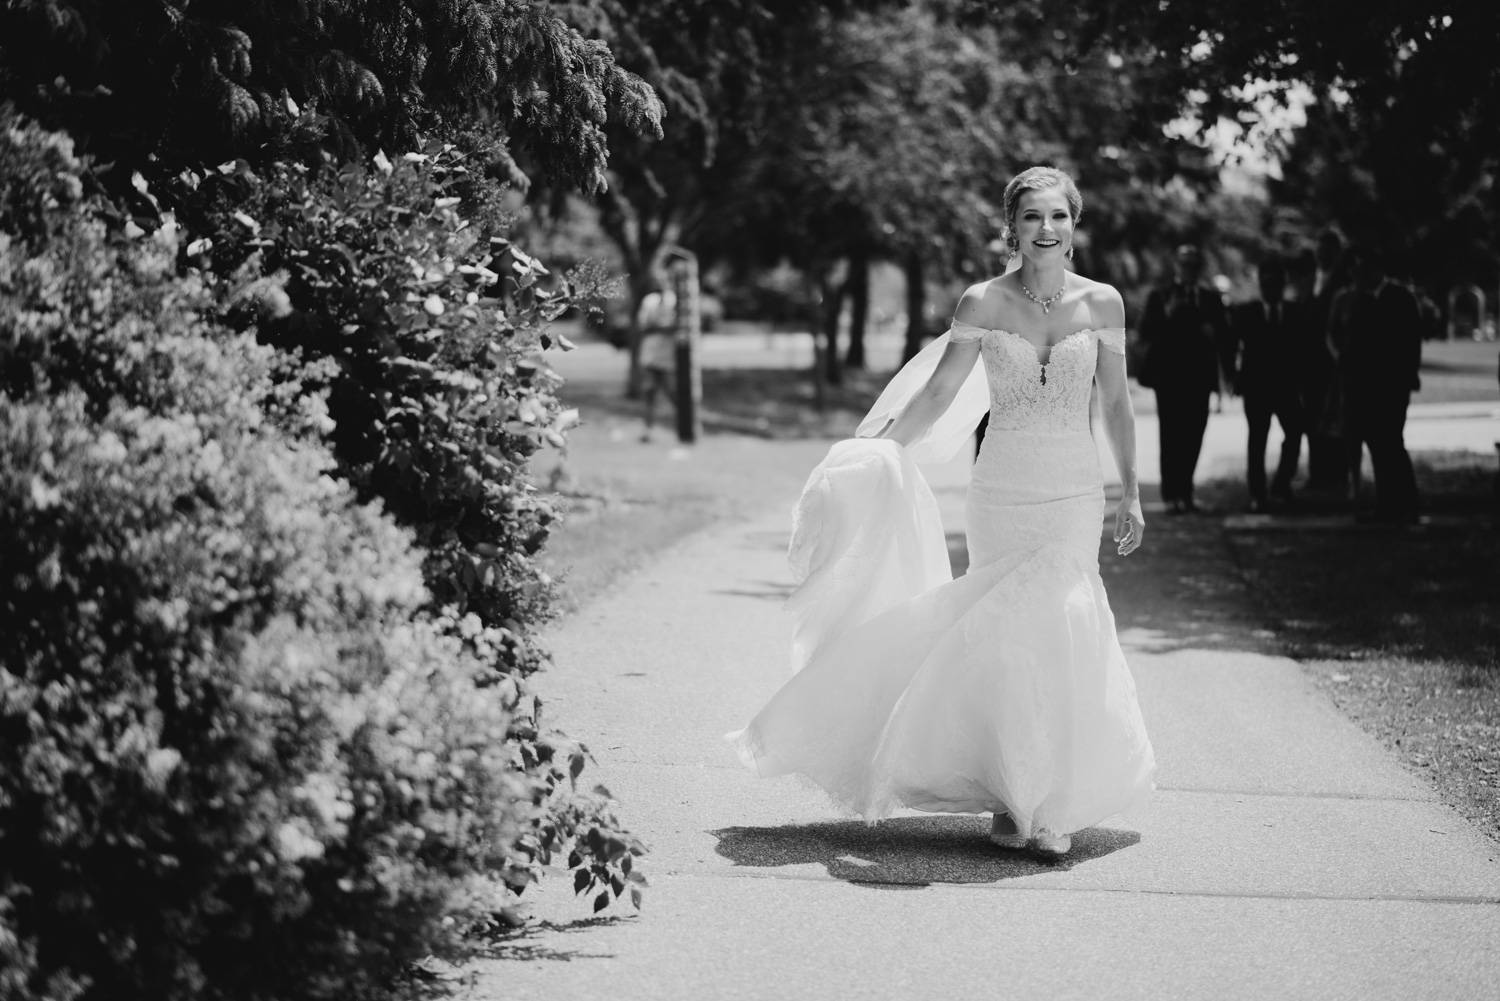 Bride walking towards groom on sidewalk